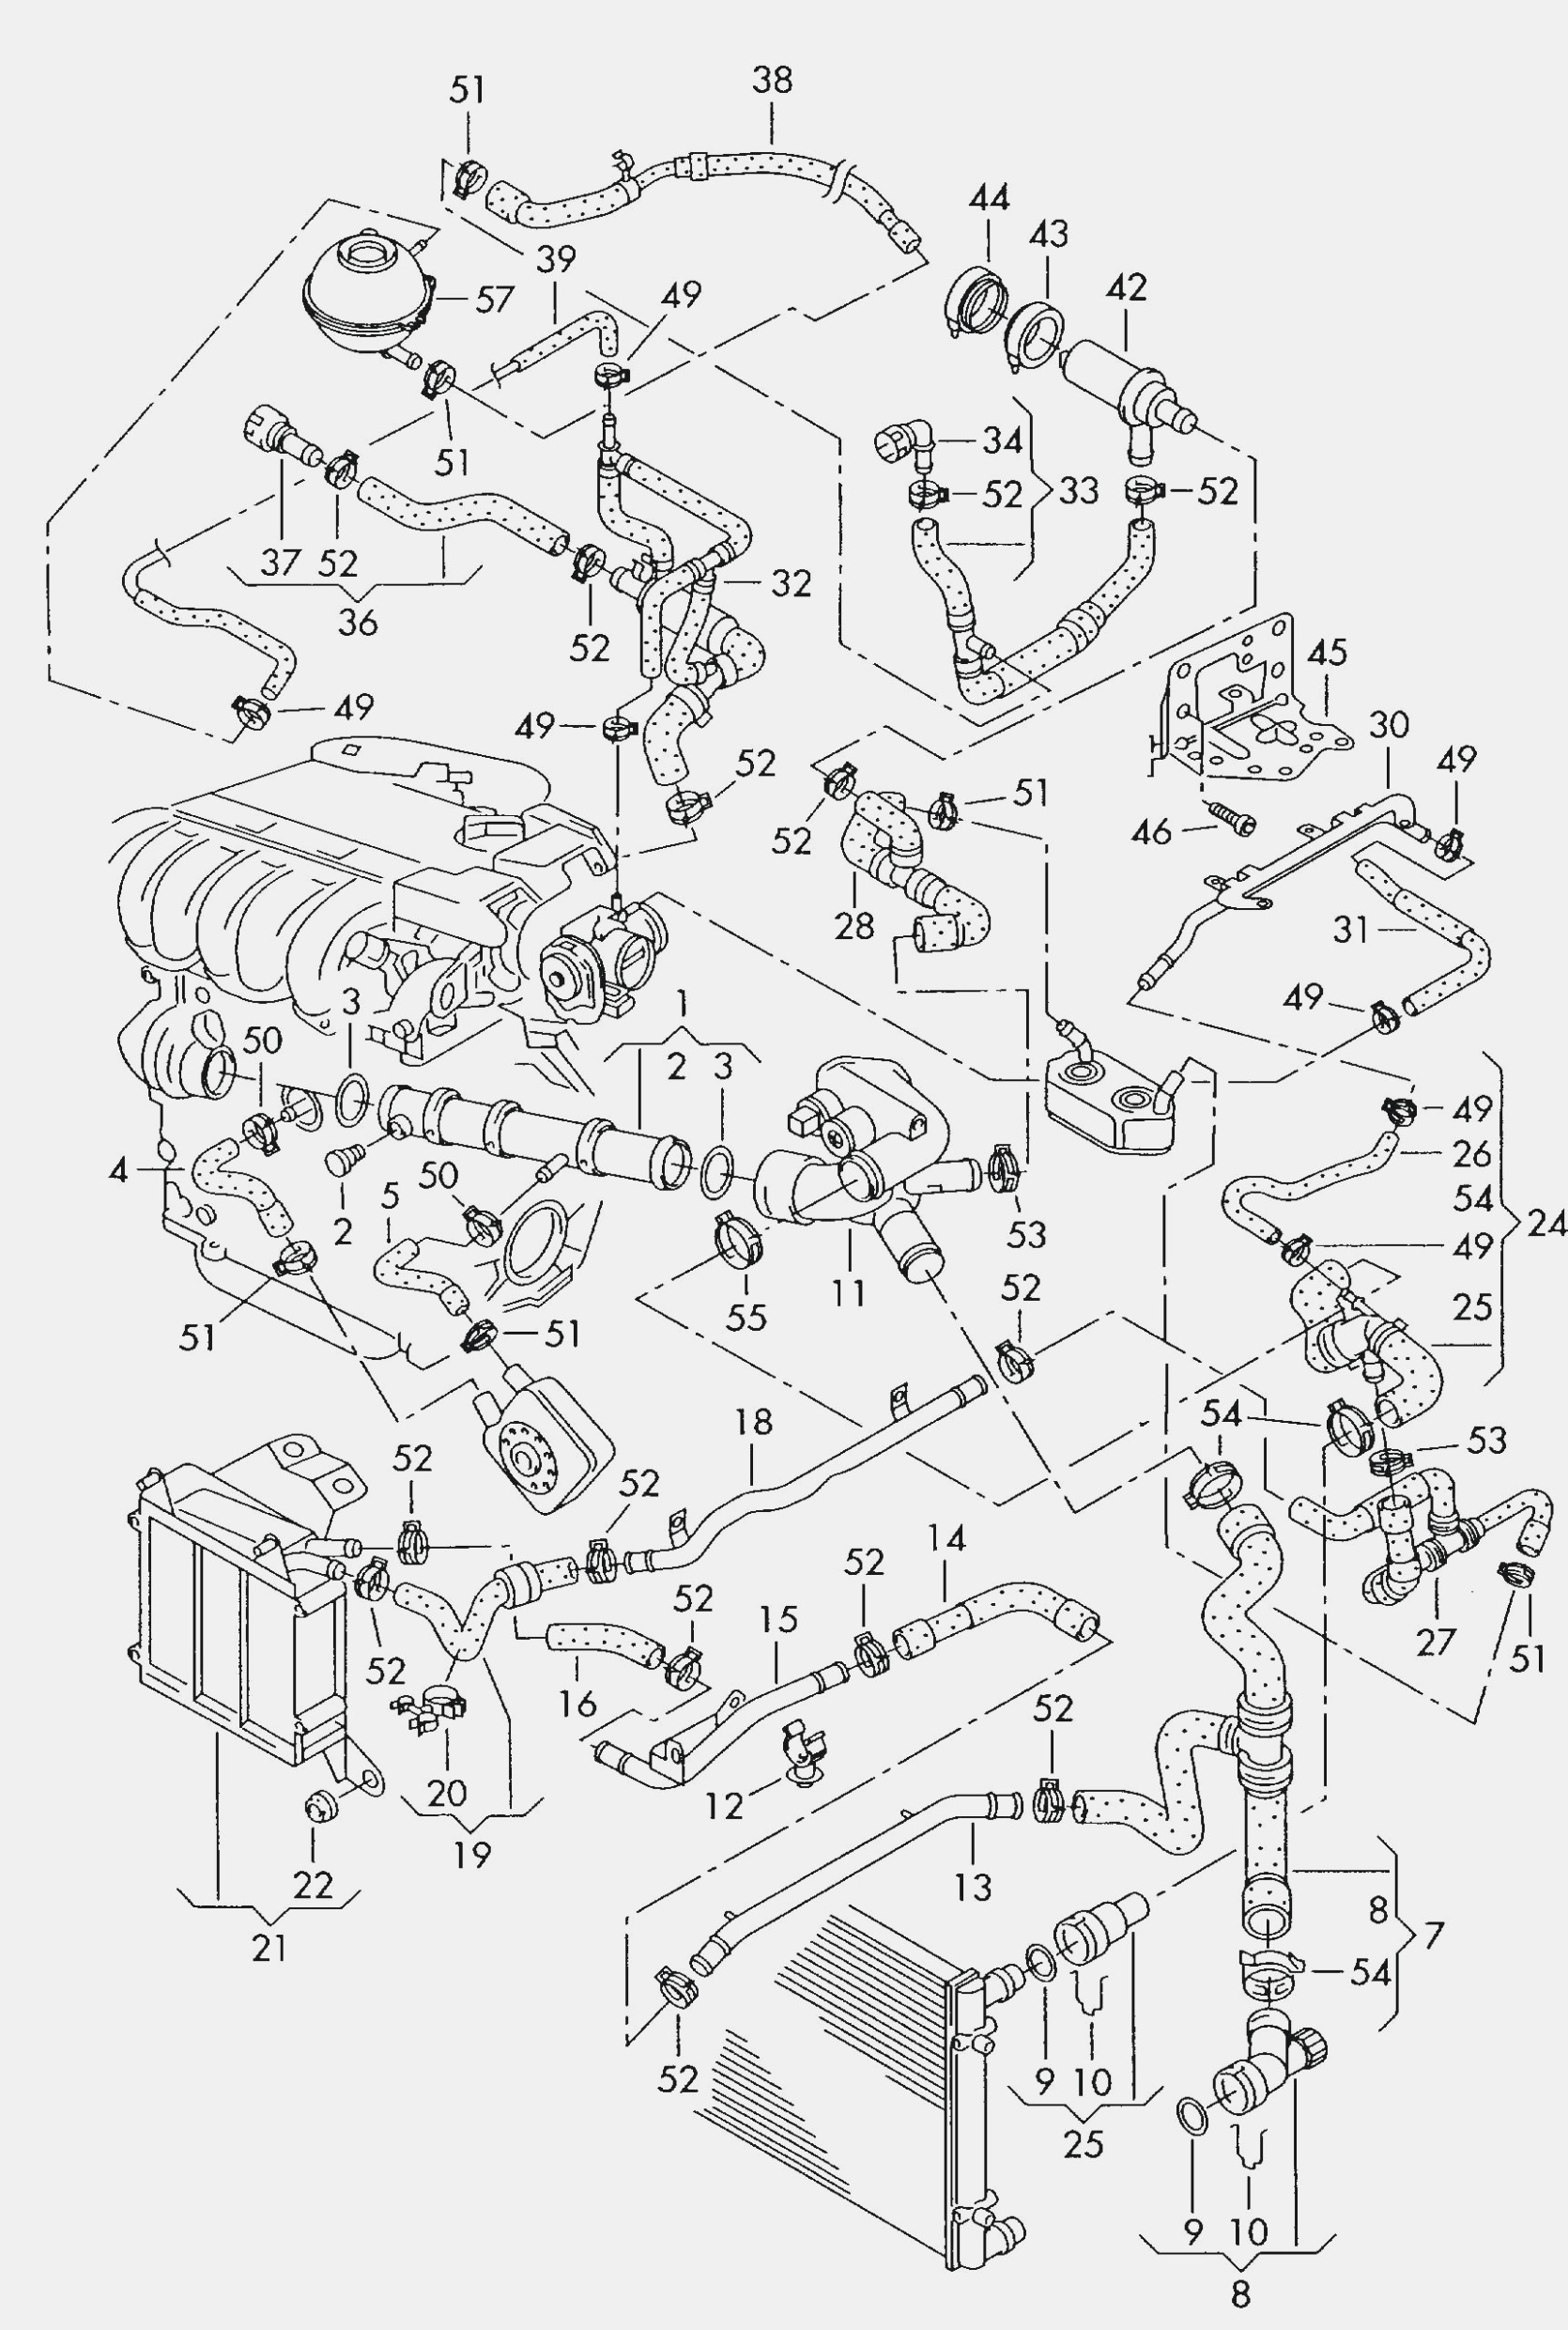 Diagram Of Cooling System for Engine Diagram Also 2012 Vw Jetta 2 0 Tsi Engine 95 Vw Jetta Wiring Of Diagram Of Cooling System for Engine